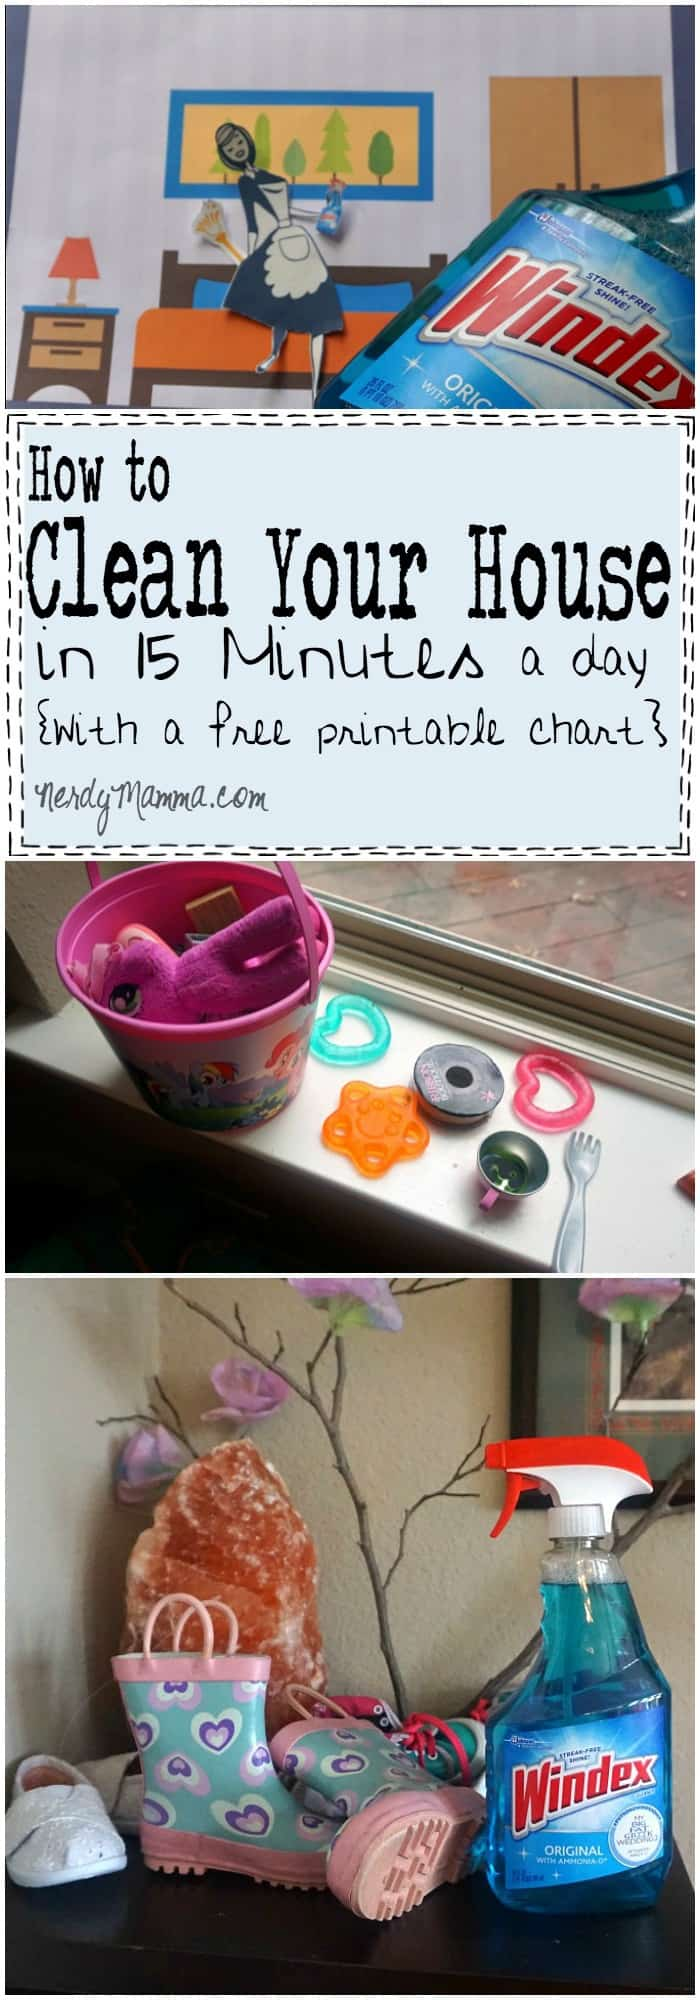 I love this easy idea for cleaning your house in 15-minutes a day! I totally have to try it.